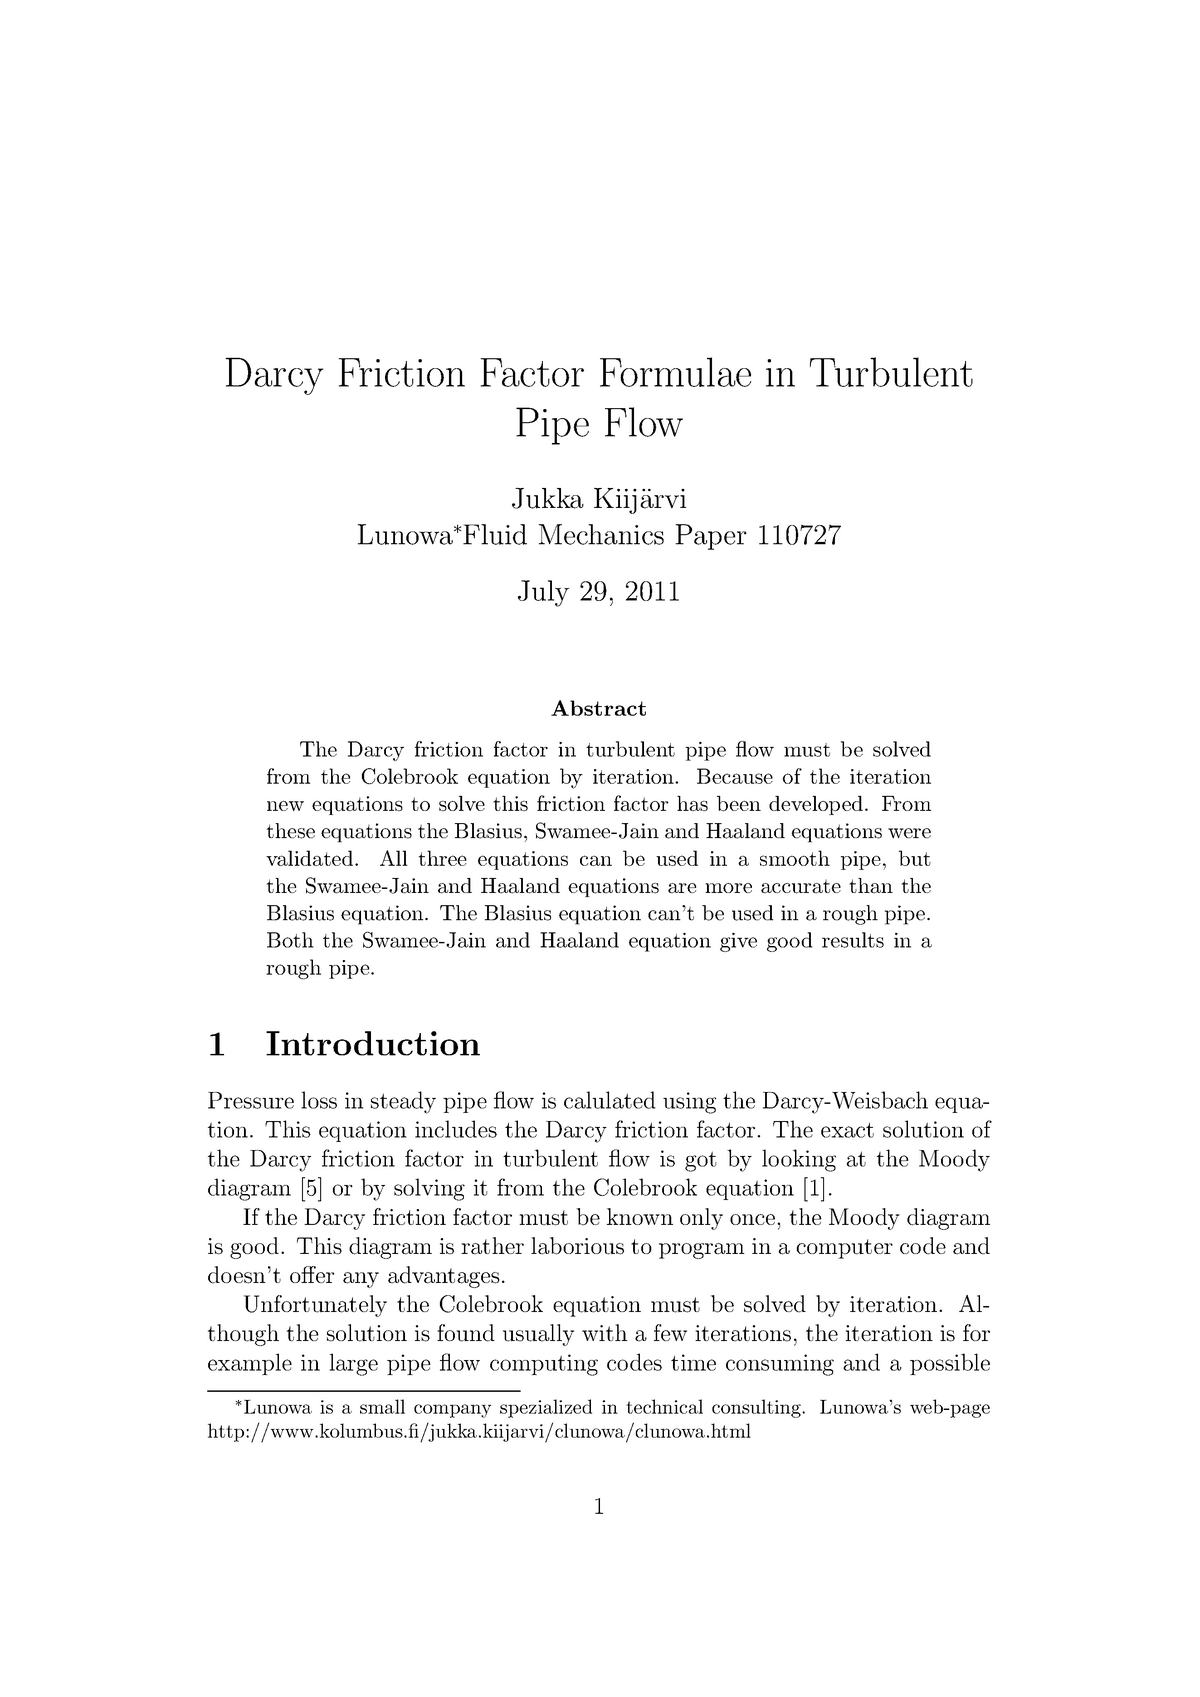 Article about 'Darcy Friction Factor Formulae in Turbulent